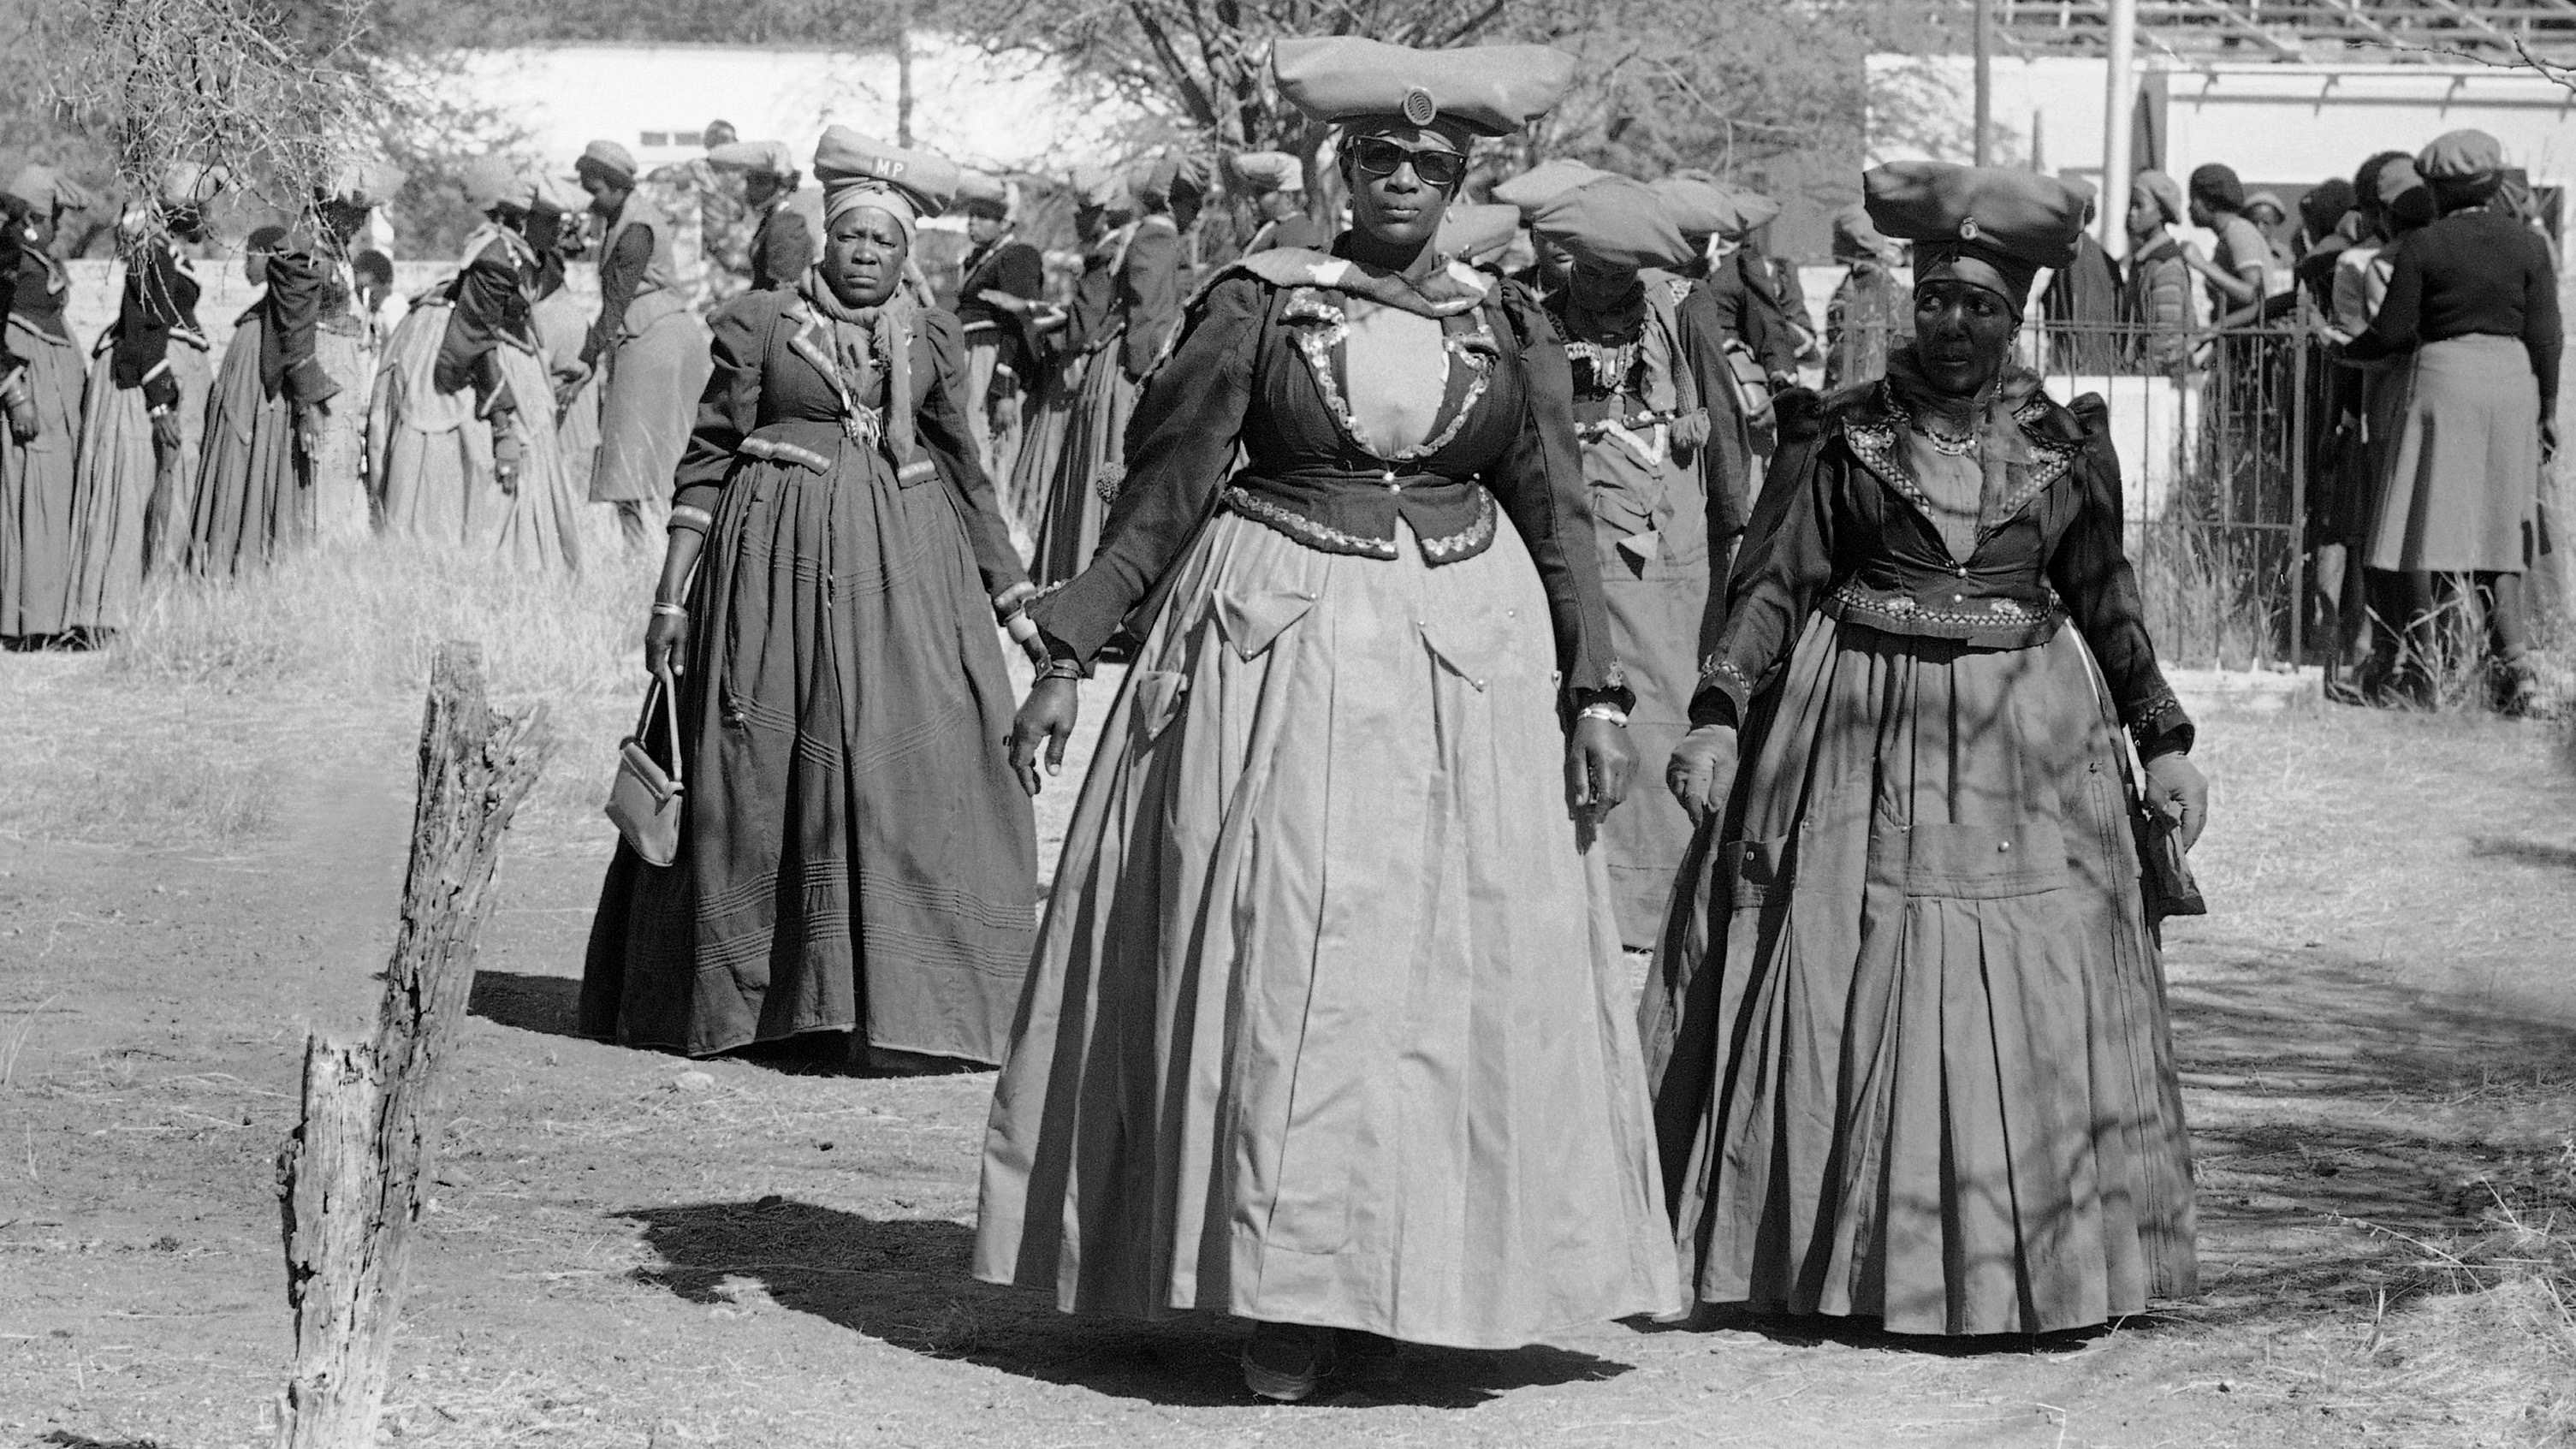 Women of the Herero tribe, the fourth largest of the territory's black tribes, show their traditional dress, July 4, 1981 in Windhoek.